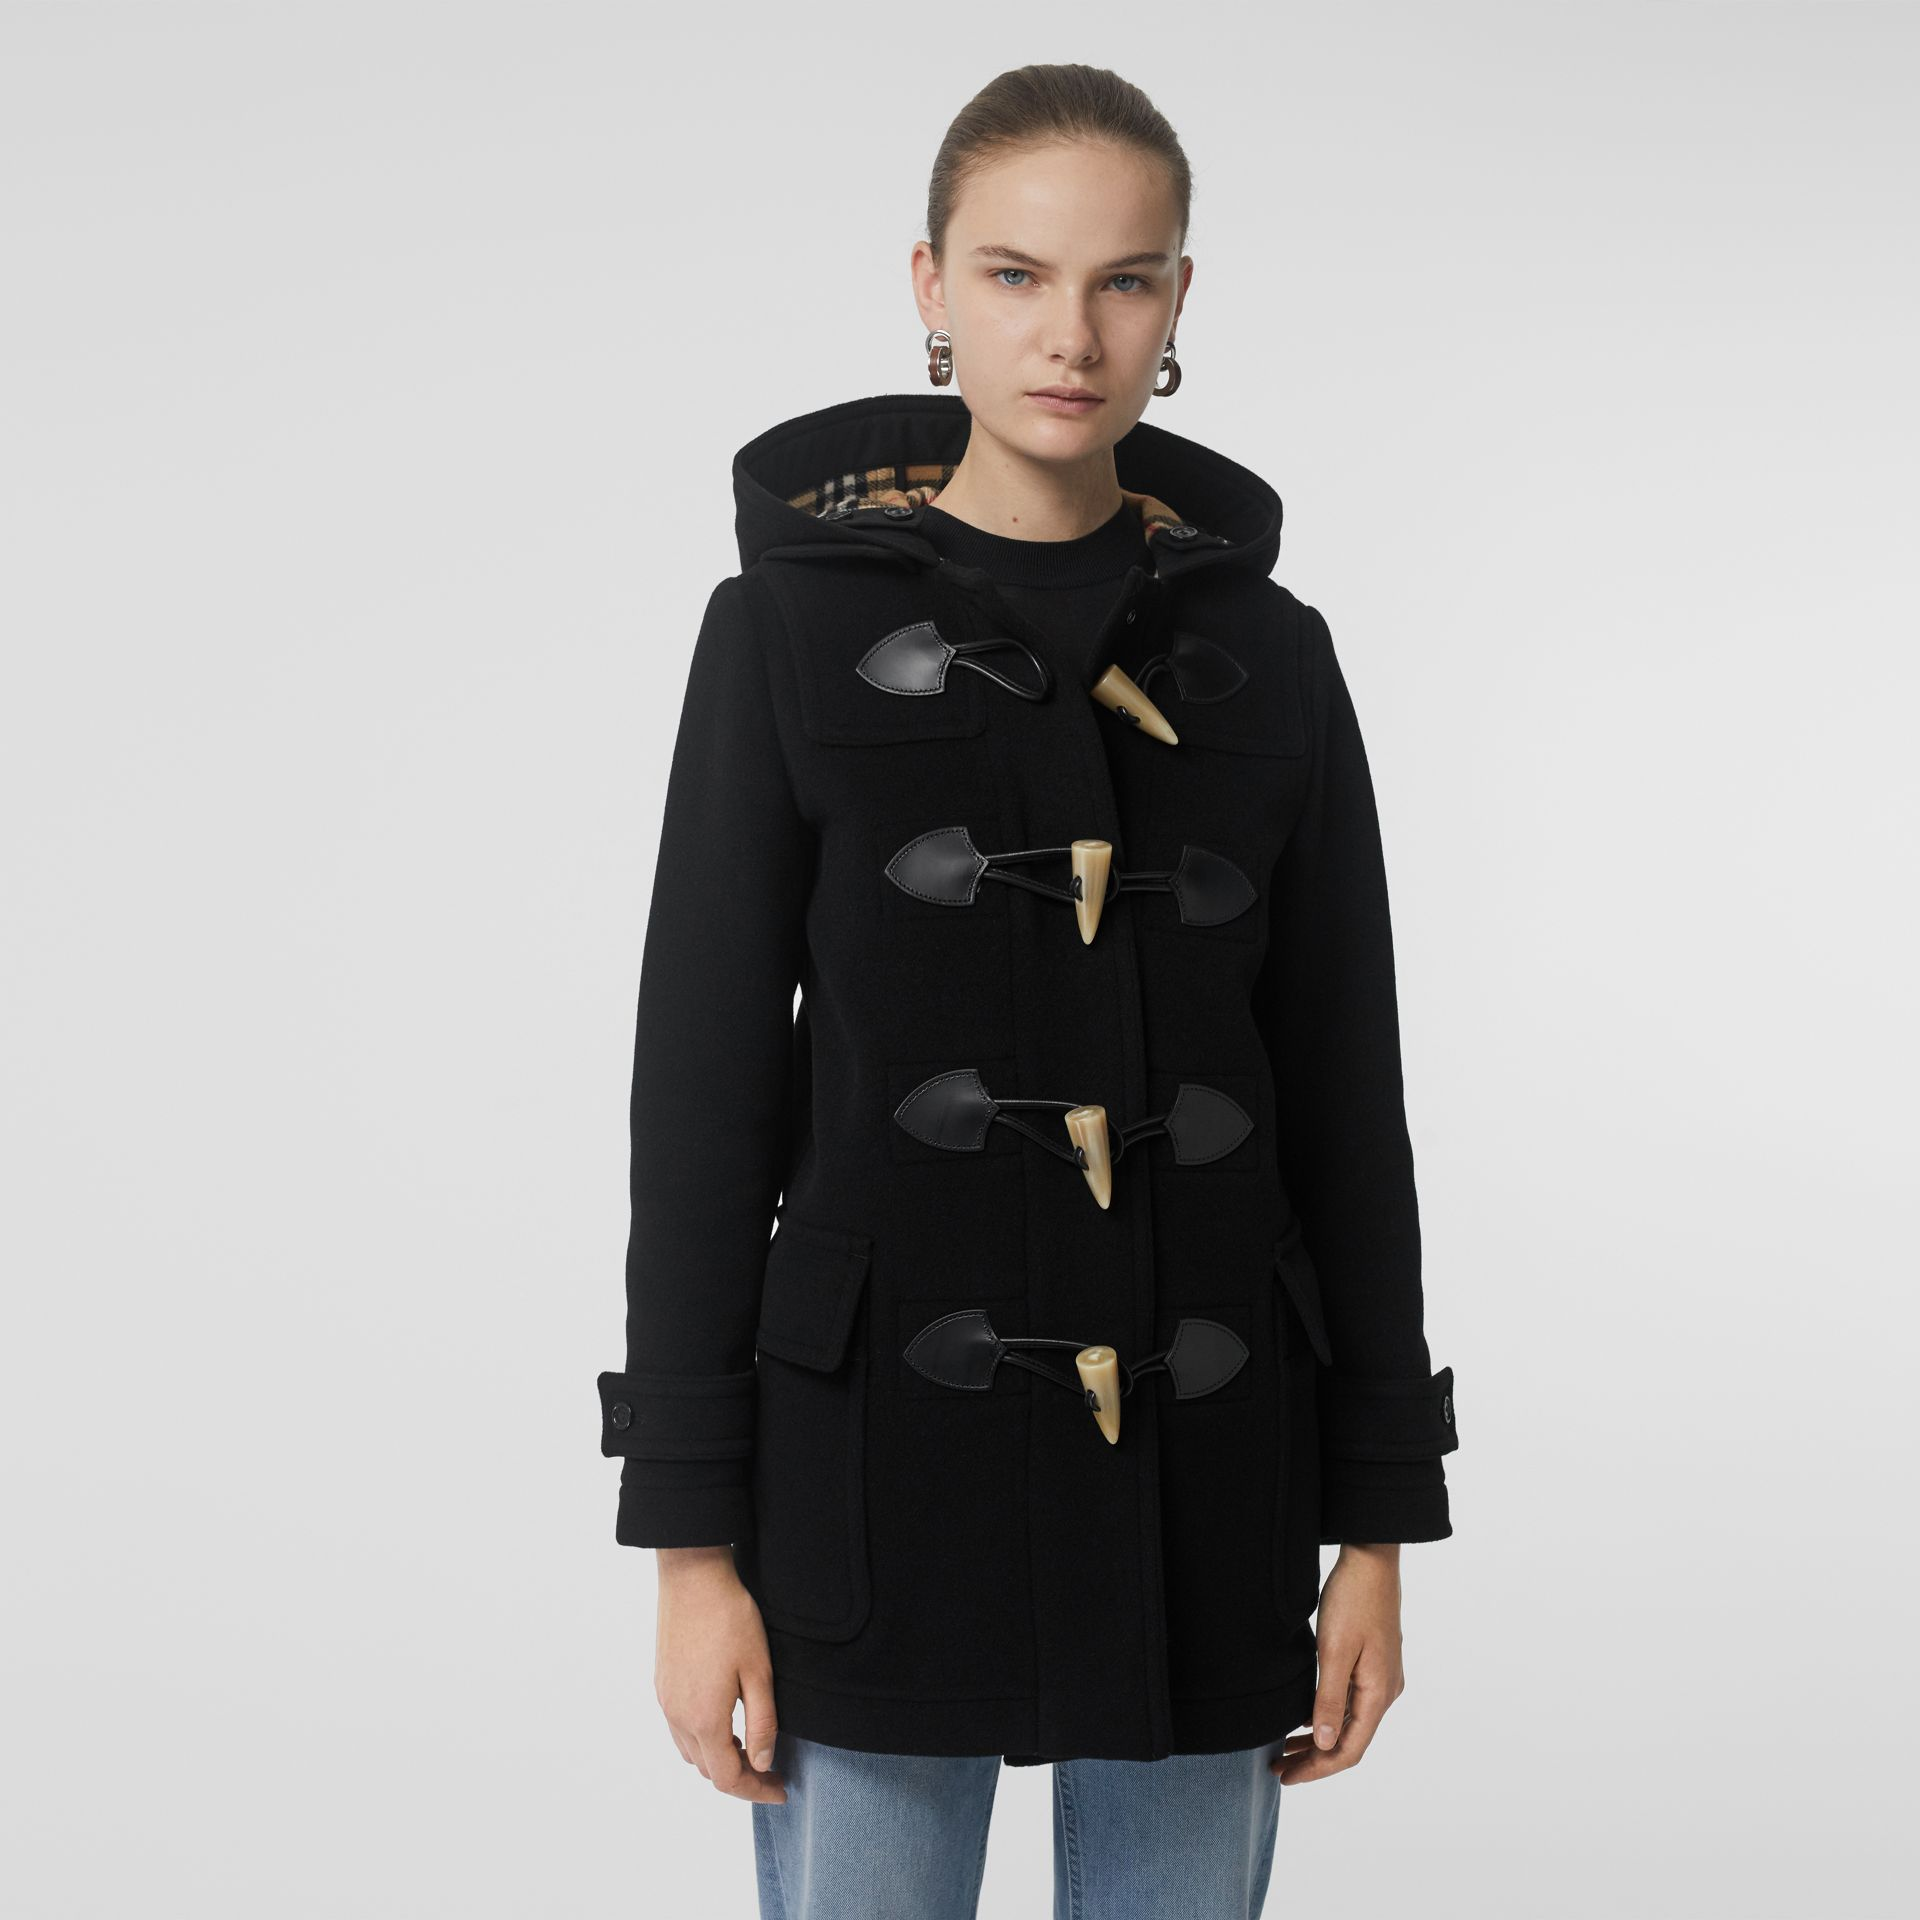 Wool Blend Duffle Coat in Black - Women | Burberry United Kingdom - gallery image 5